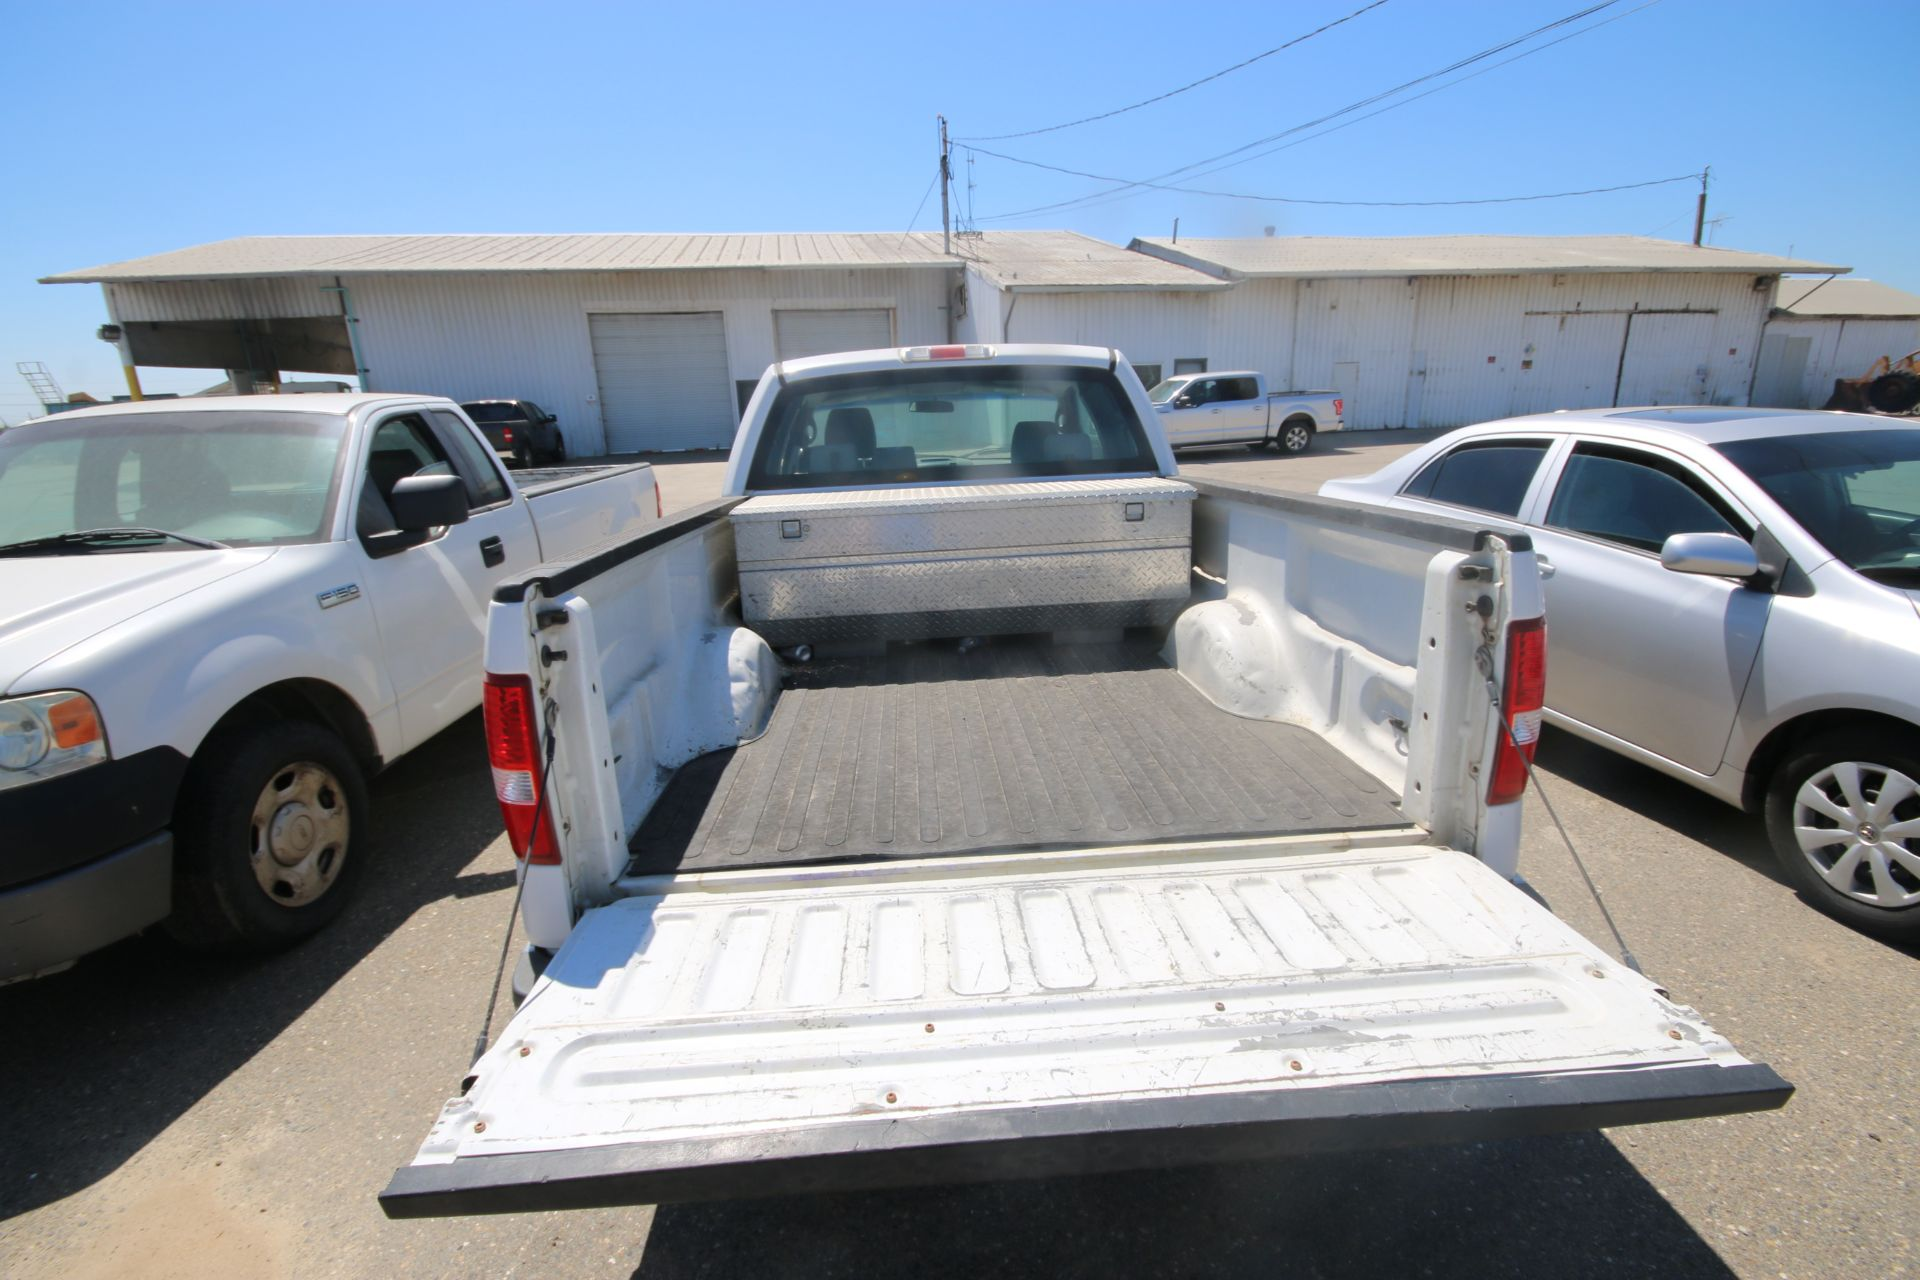 2006 Ford F150 S/C Pick Up Truck, VIN #: 1FTRX12W46FA38458, with 233,106 Miles, Started Up as of - Image 6 of 21